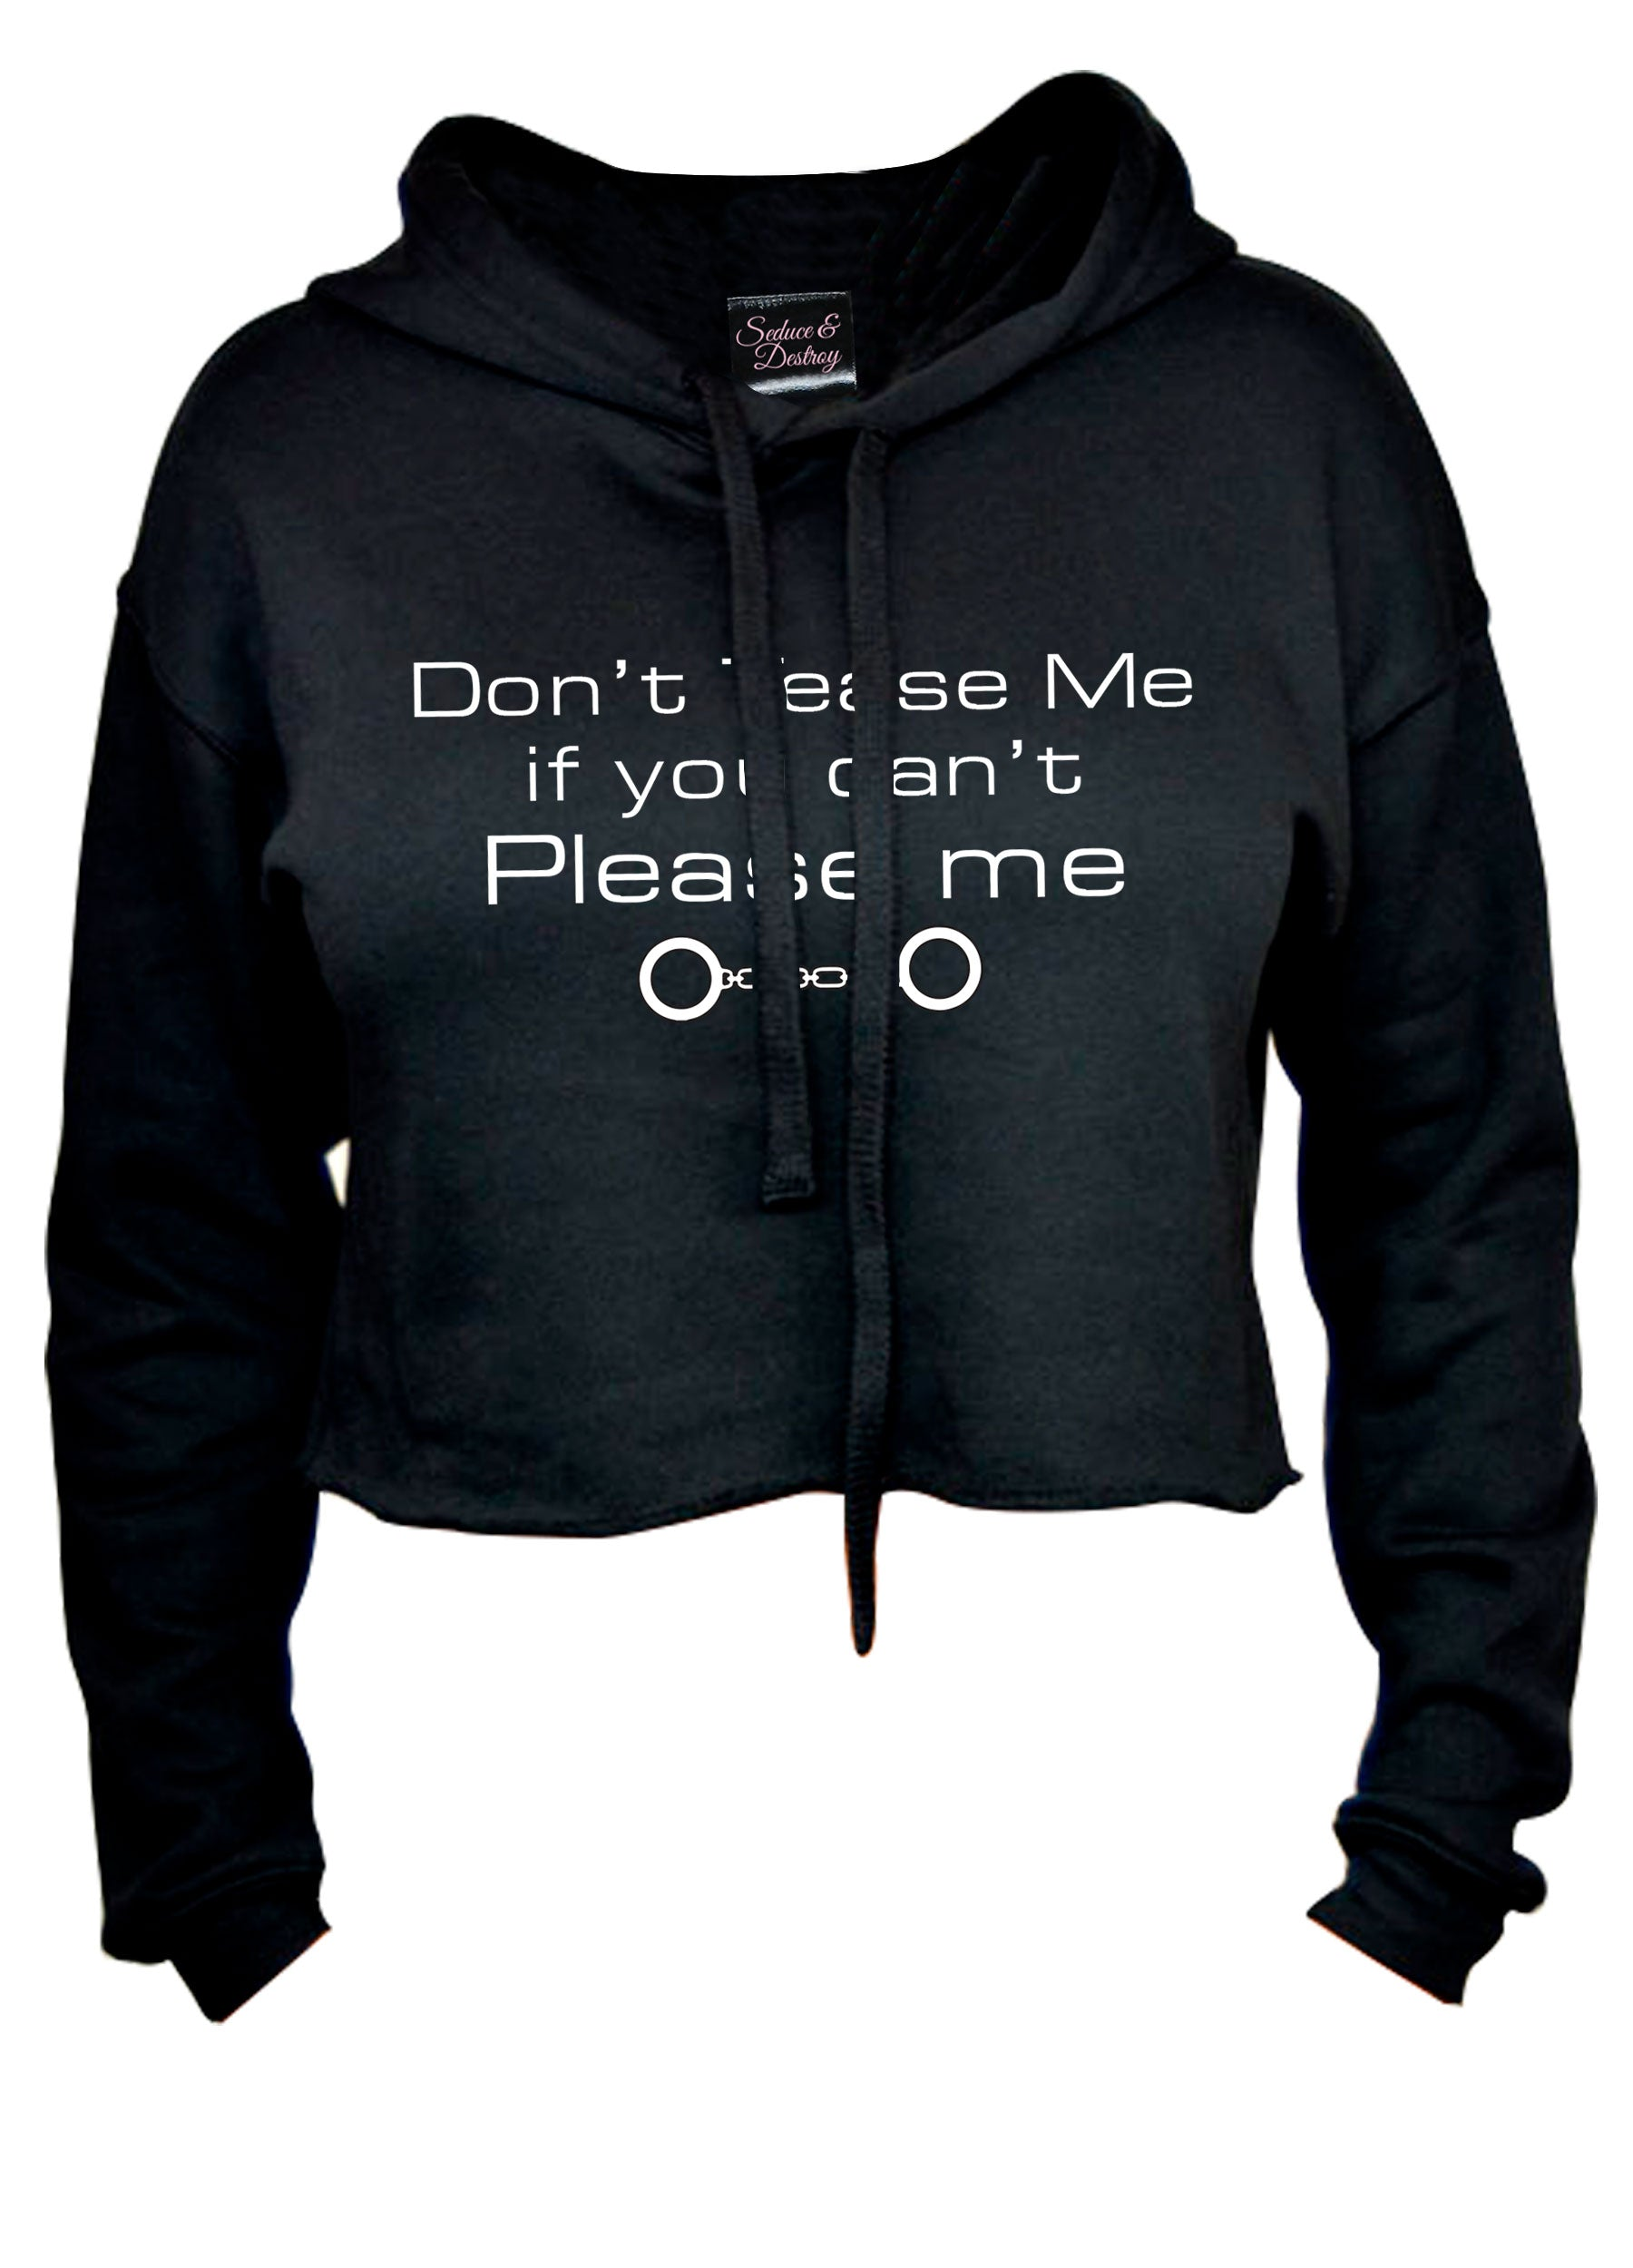 Don't Tease Me If You Can't Please Me Cropped Hoodie